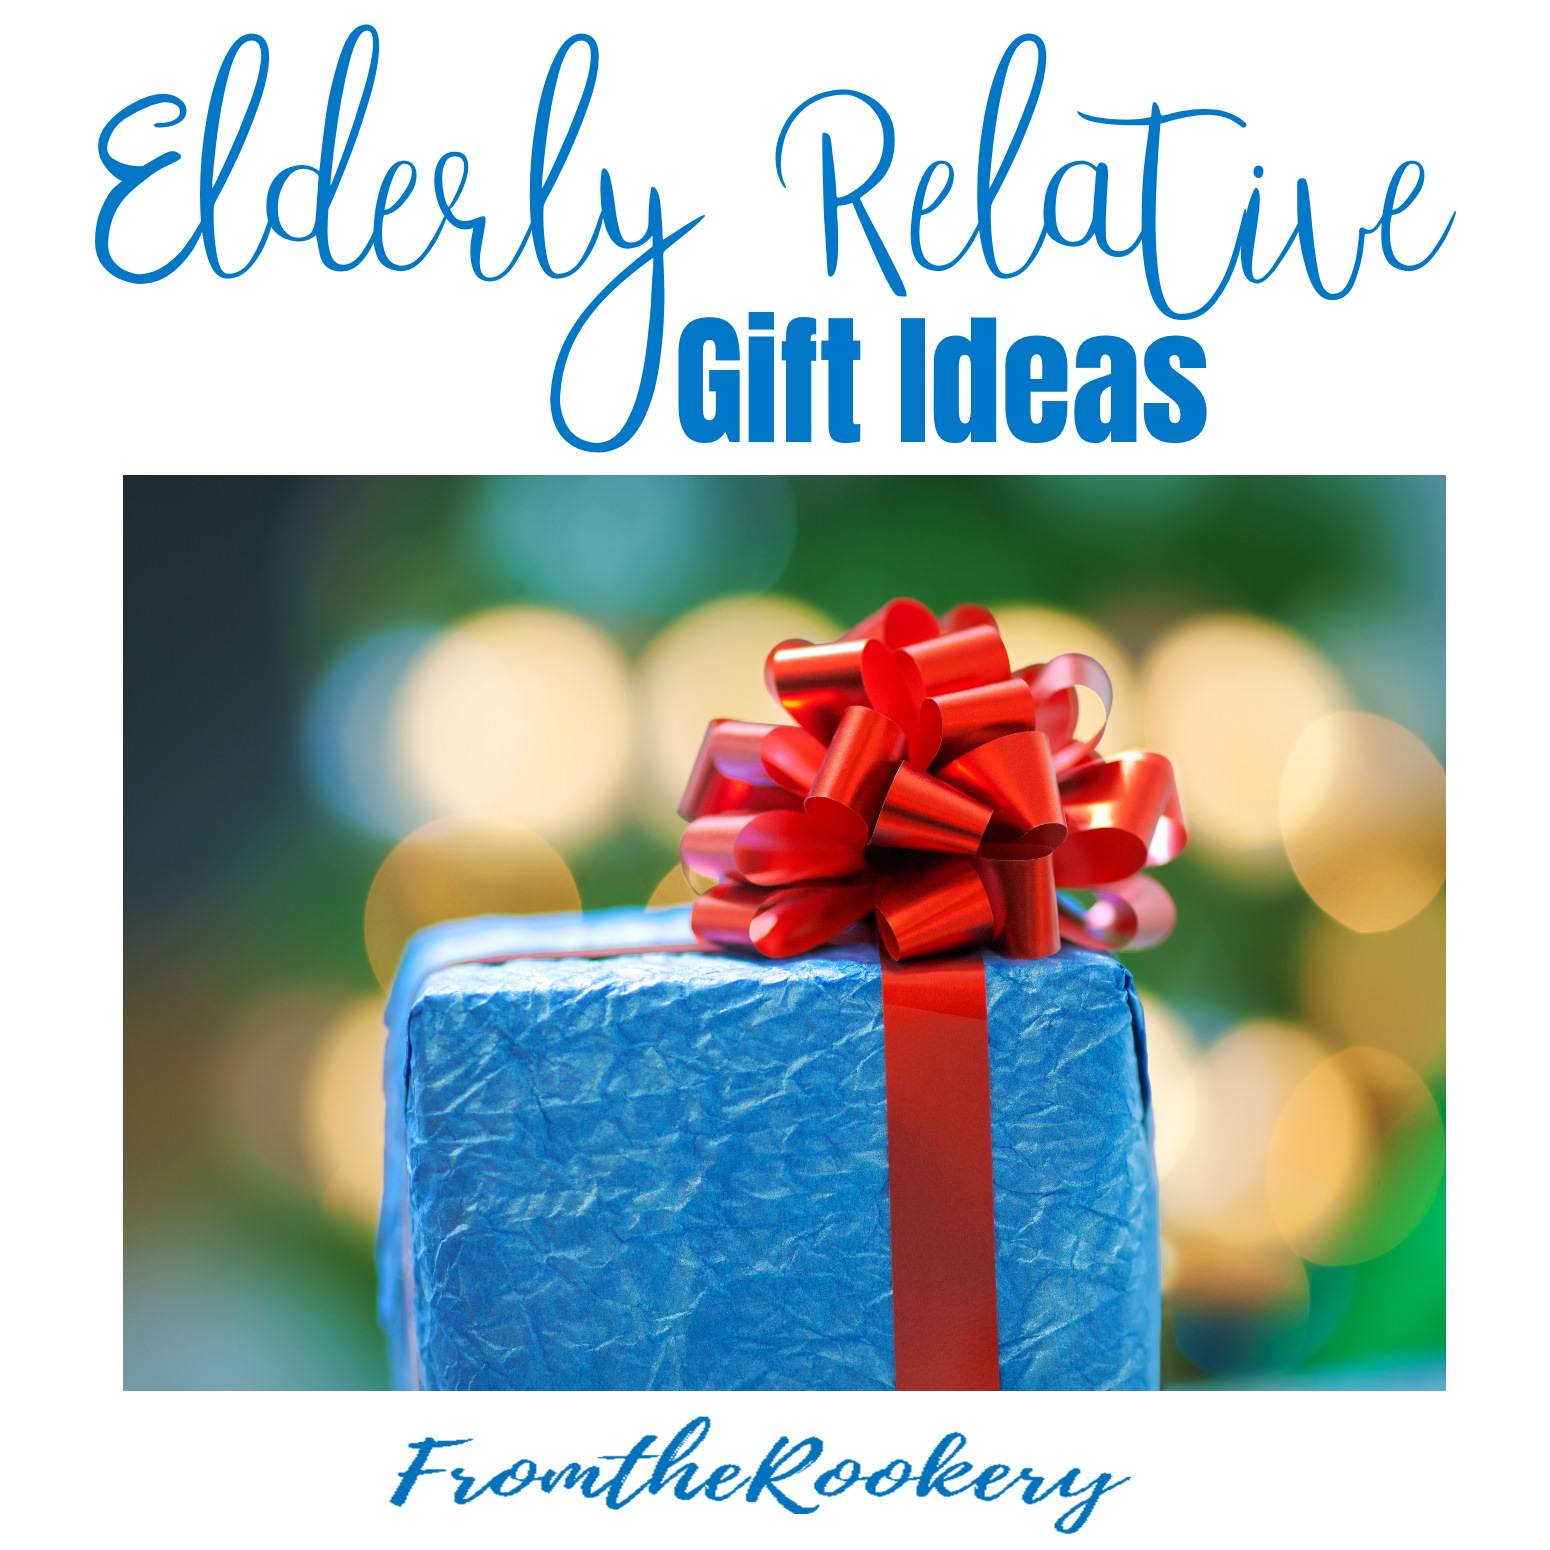 gifts for elderly parents